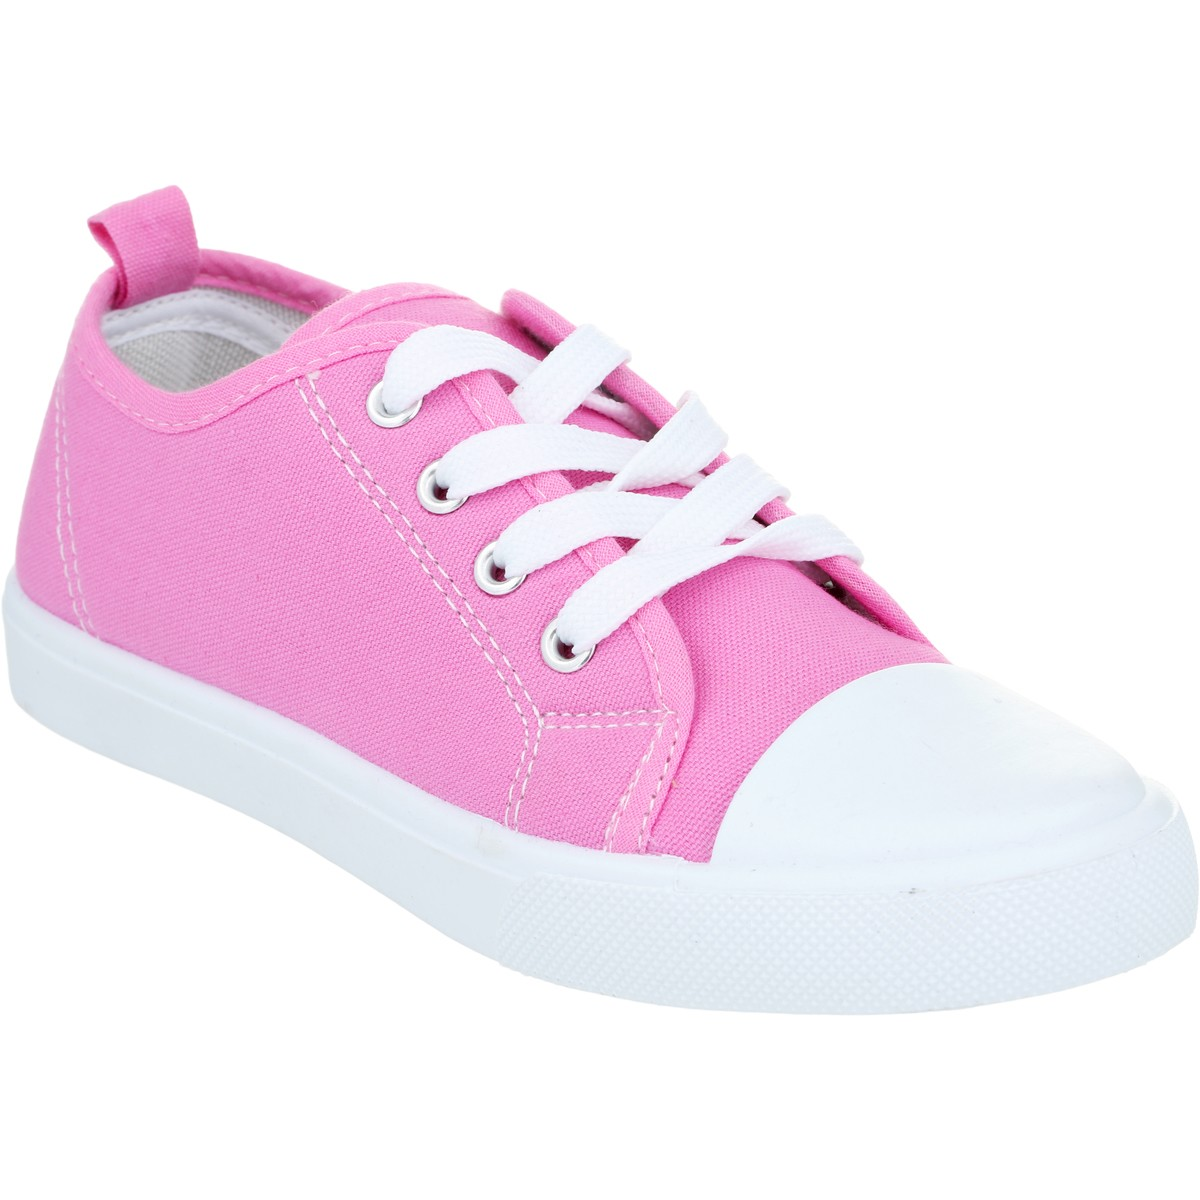 Big W Caps B Collection Girls Casual Sneakers Pink Big W